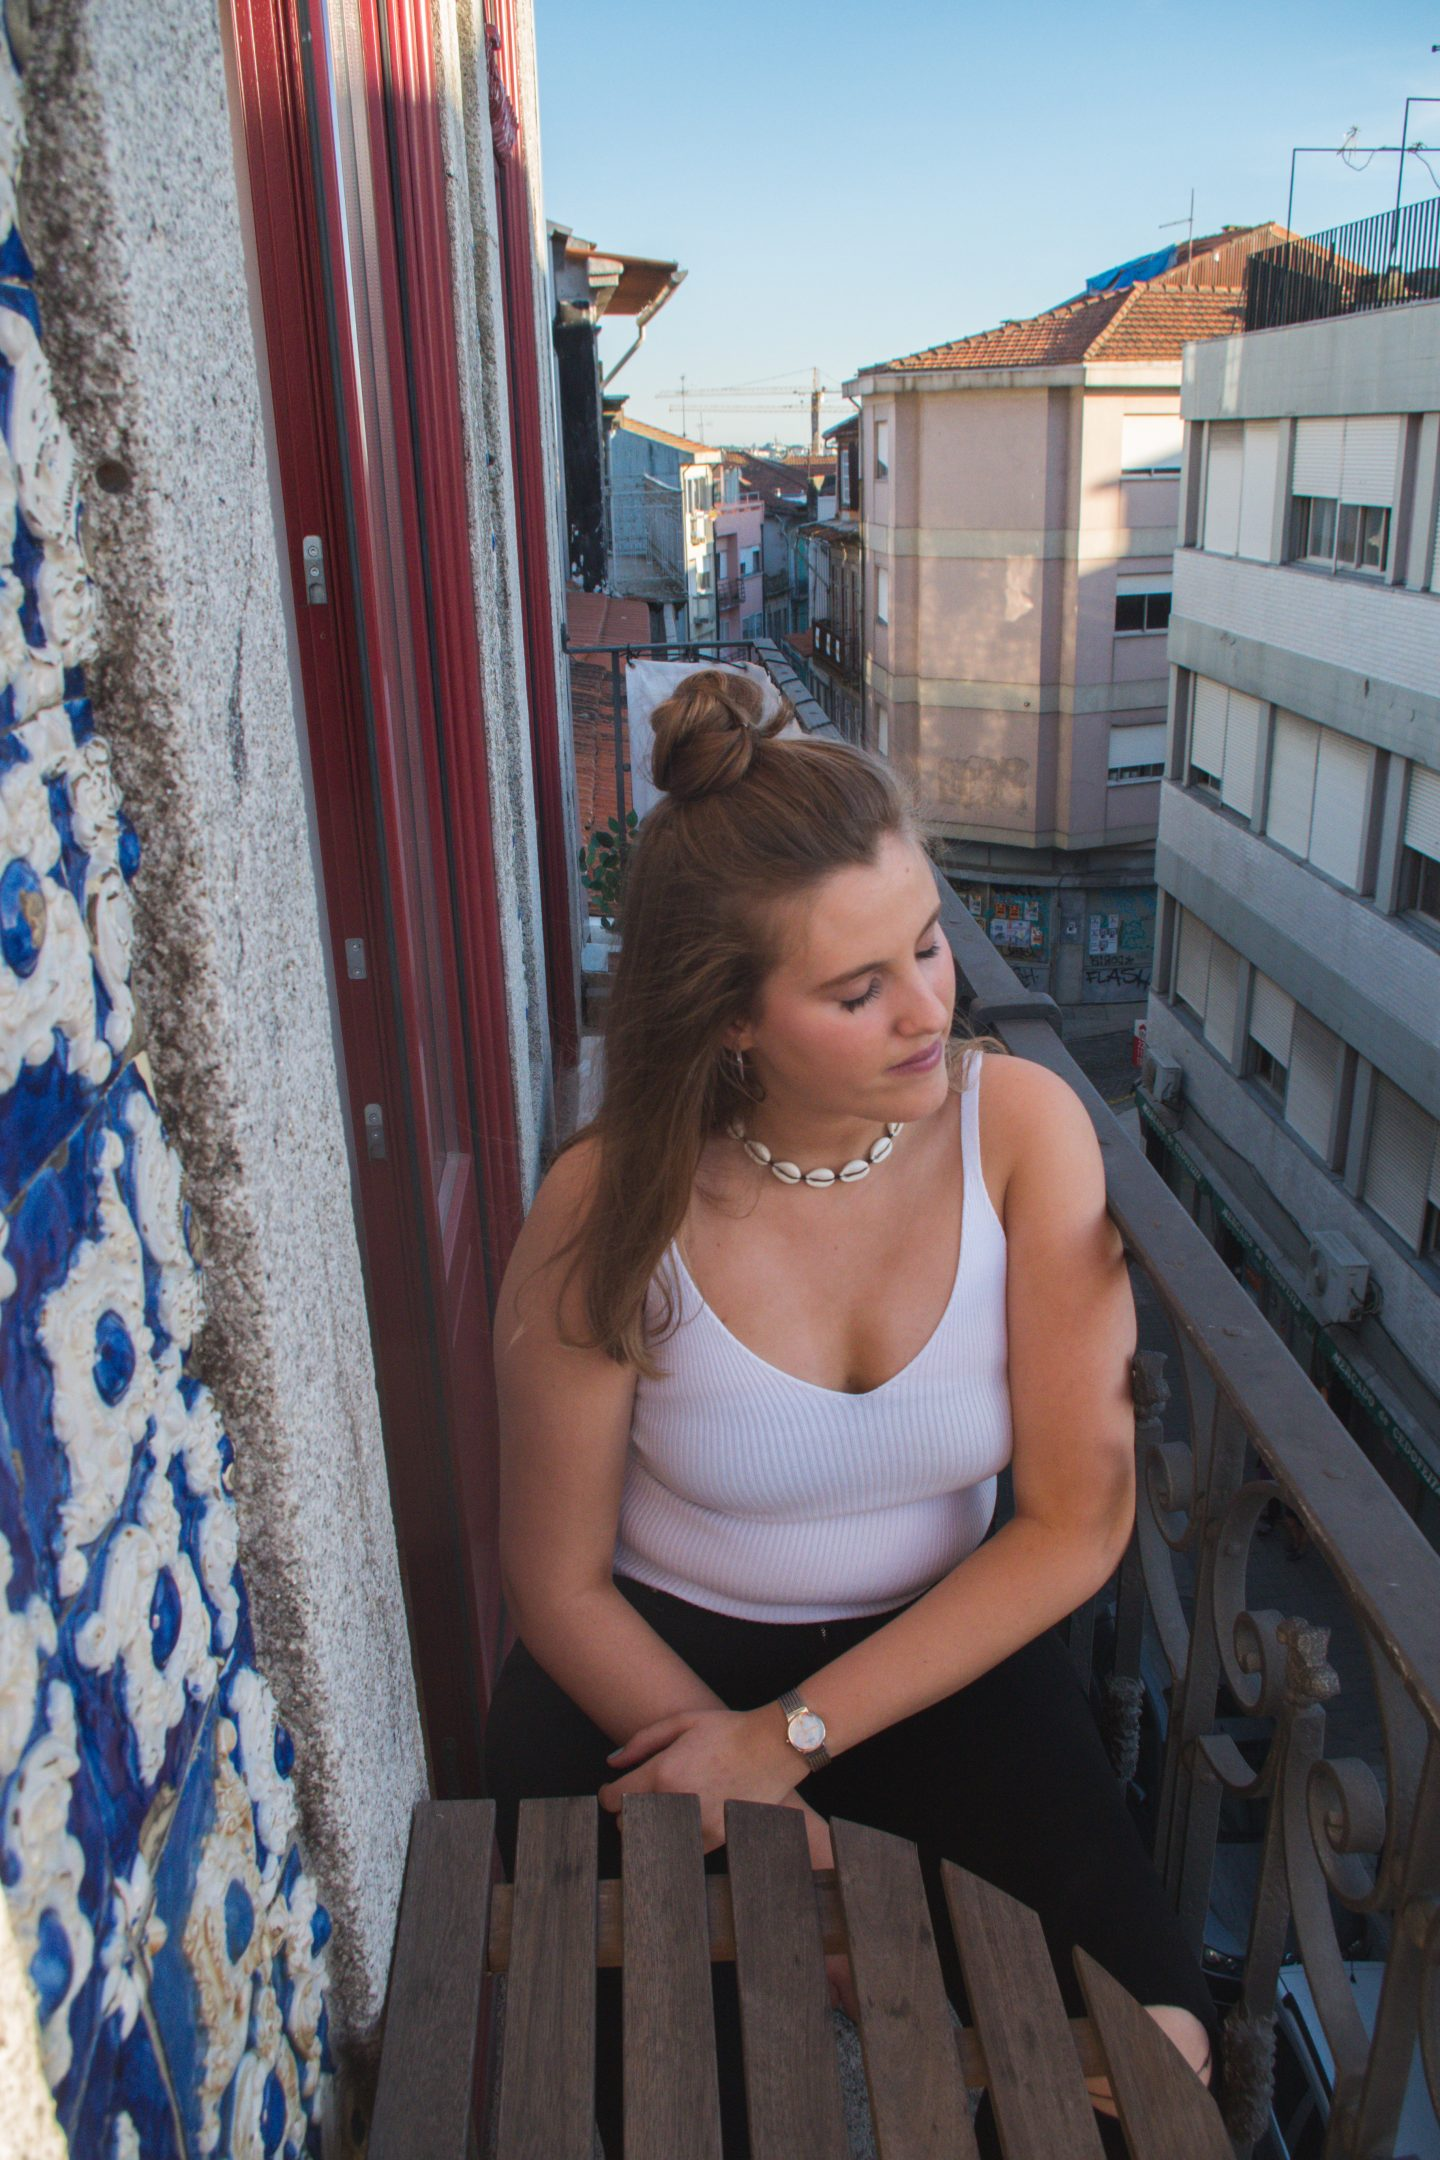 How to wear summer tops without bra straps  Porto